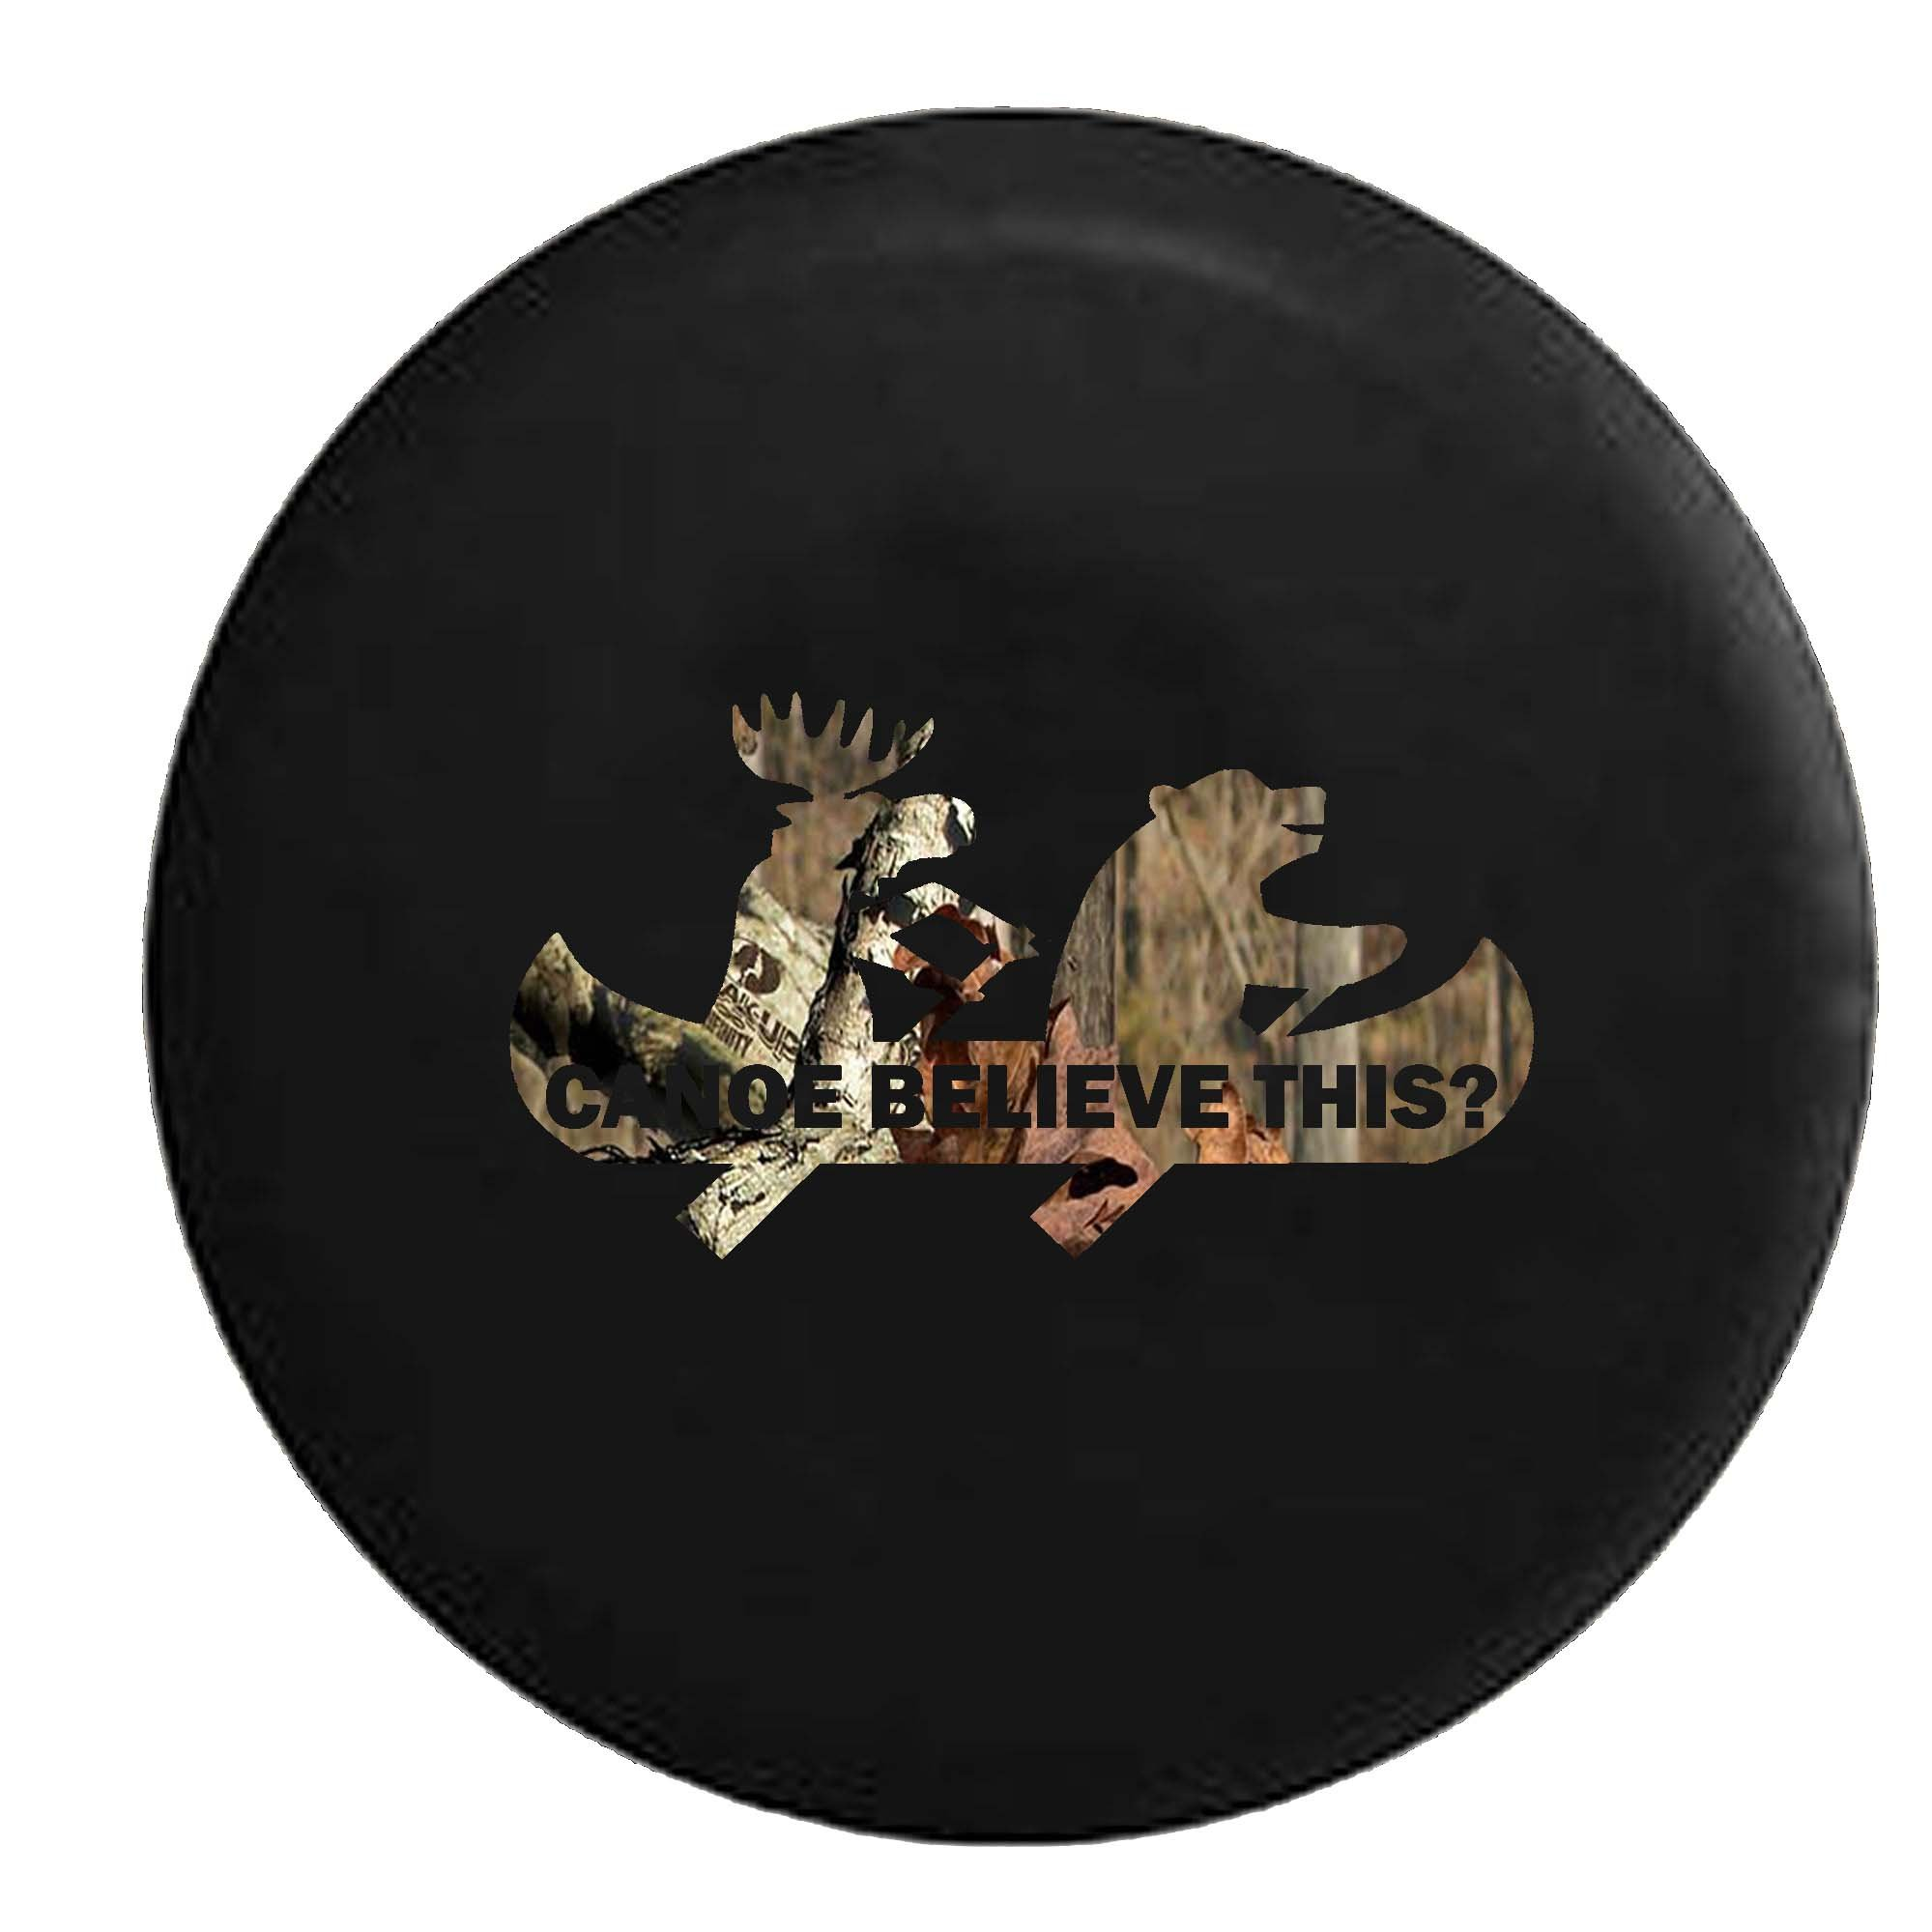 Camo - Moose Bear Canoe Outdoors Funny Camping Jeep Spare Tire Cover Vinyl Black 33 in